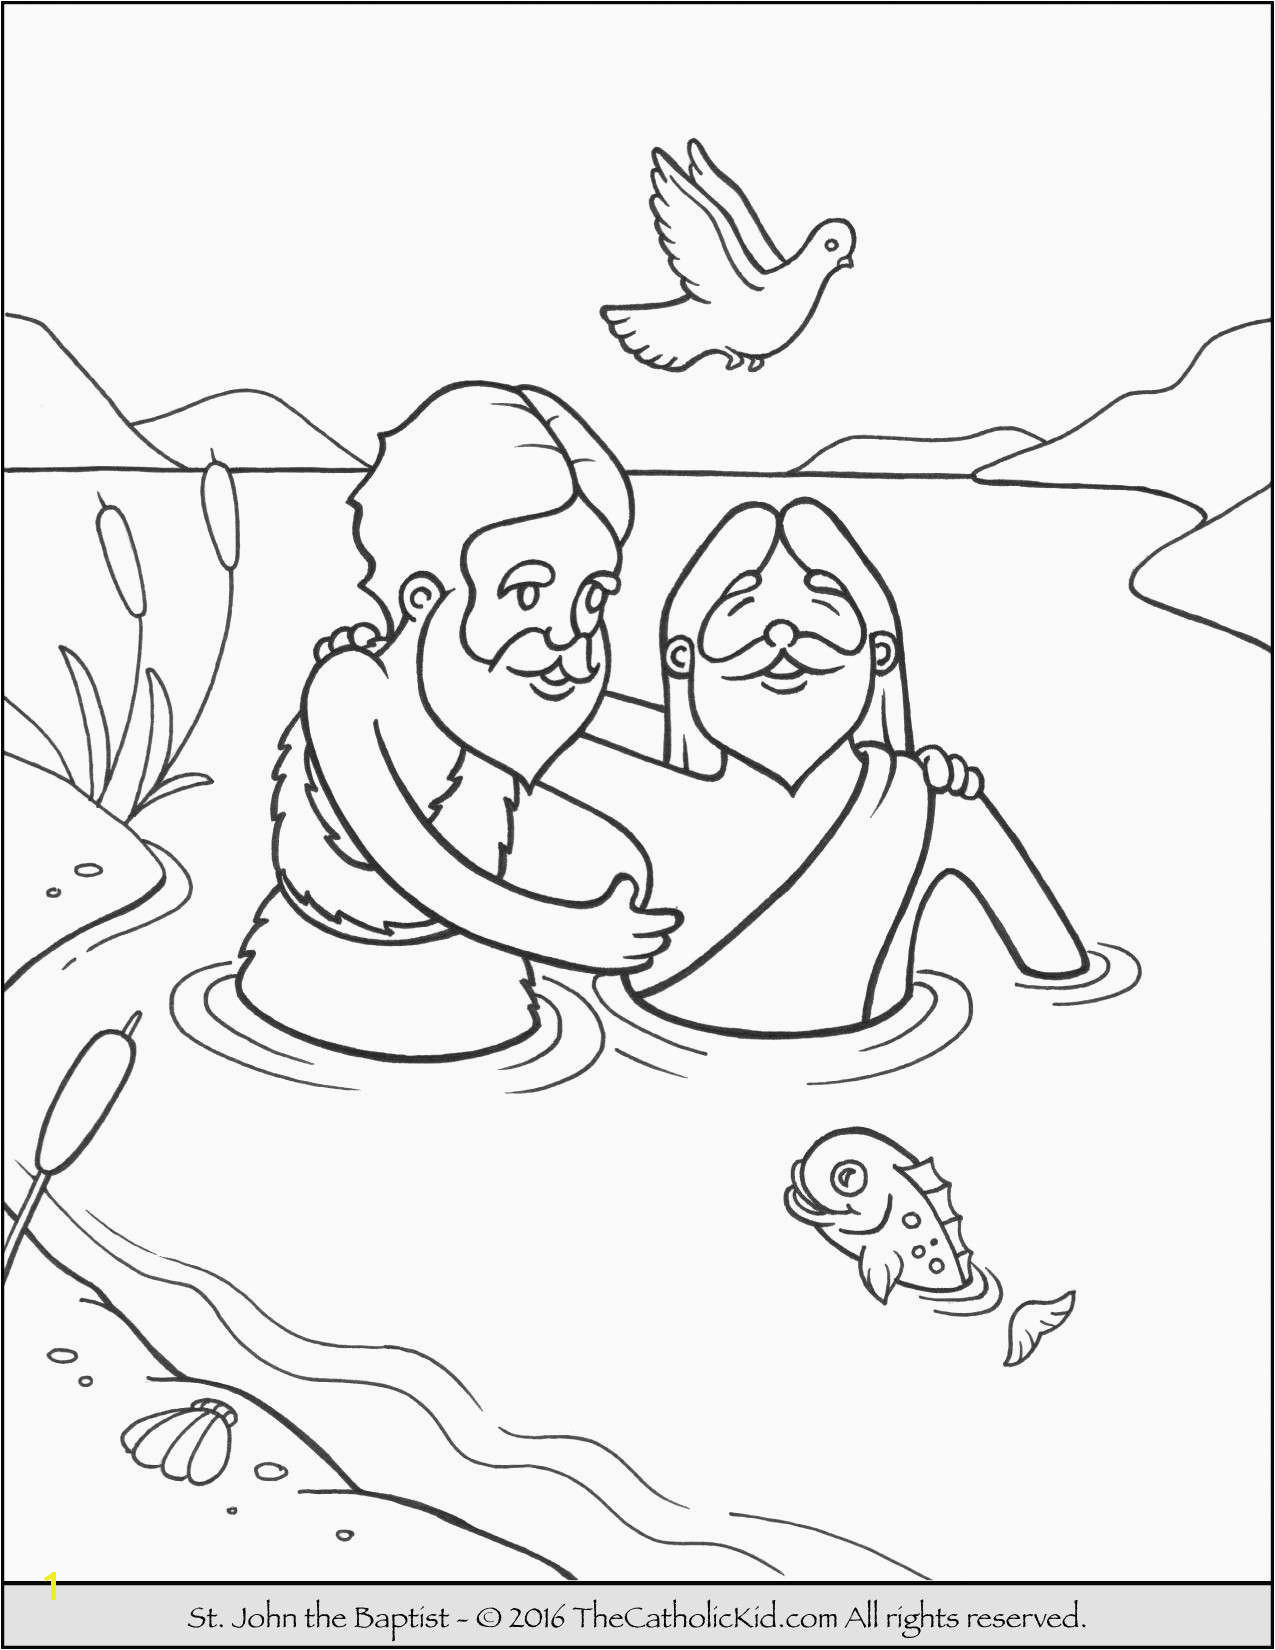 Coloring Pages for Pets Unique the Swan Princess Coloring Pages Download 14 Beautiful Coloring Pages